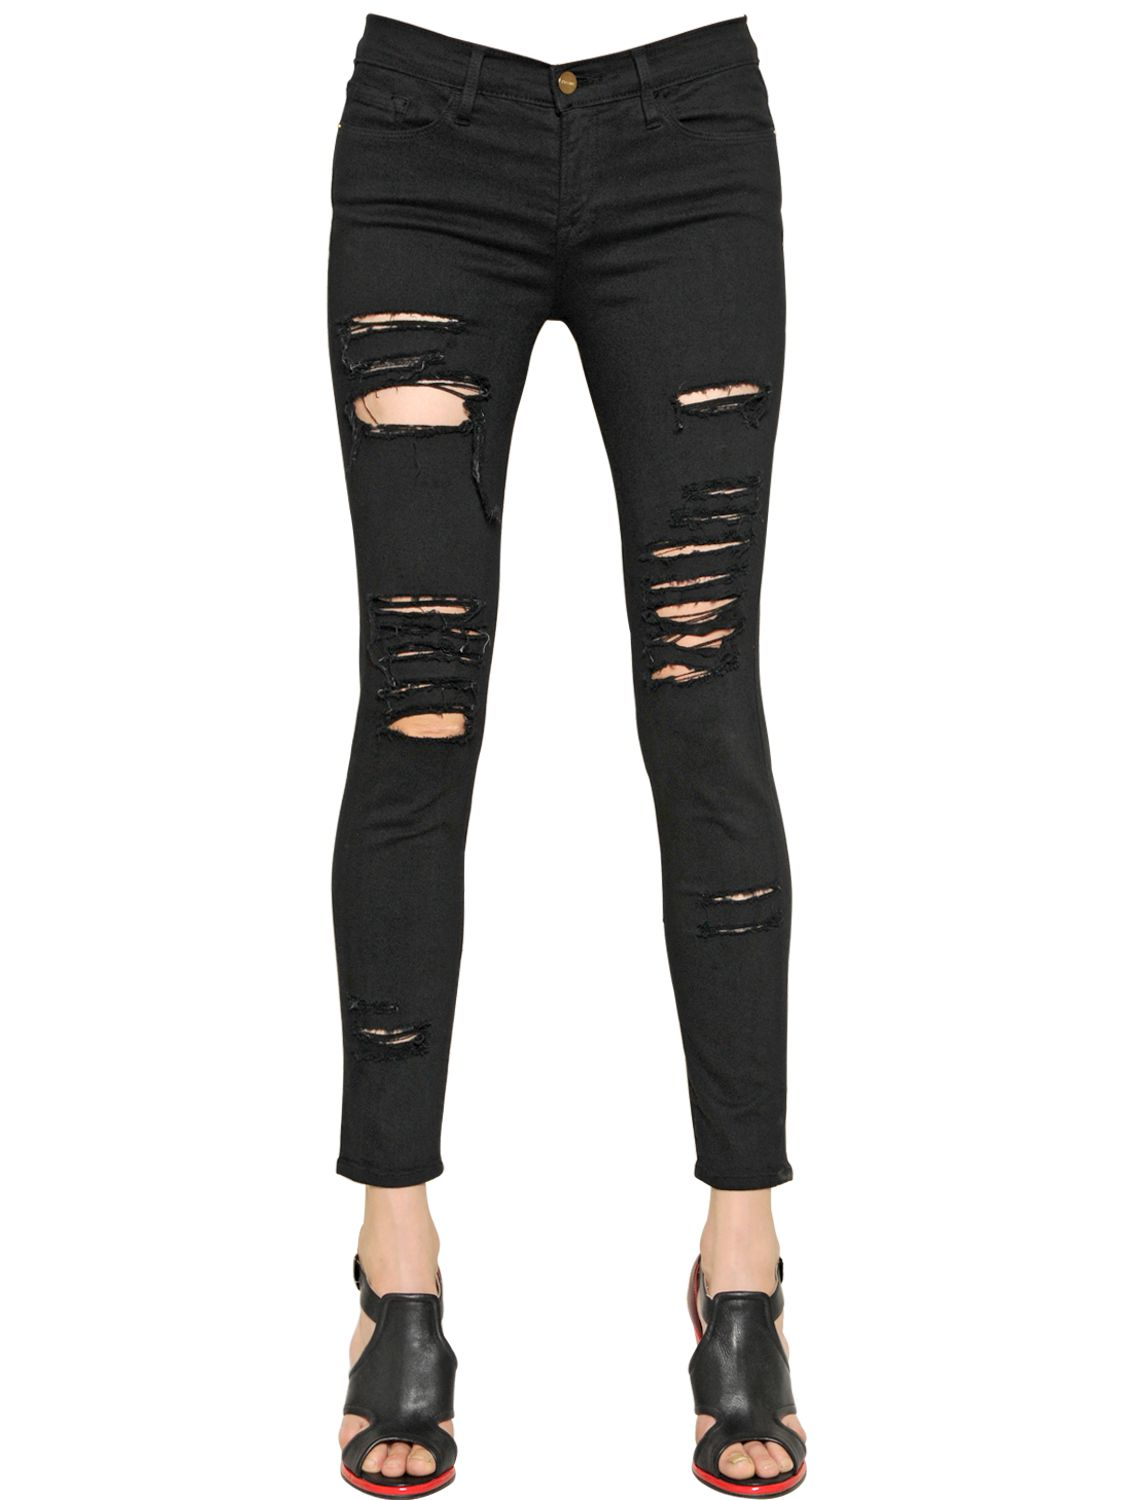 Skinny jeans for petite women from Old Navy are easy to work with. You'll find it's a breeze to match them with your favorite tops and instantly a have stylish outfit. Wear destructed jeans with a retro graphic tee and a flannel shirt and rock out to that popular band, or pair them with a turtleneck sweater for a sleek, sophisticated combination.